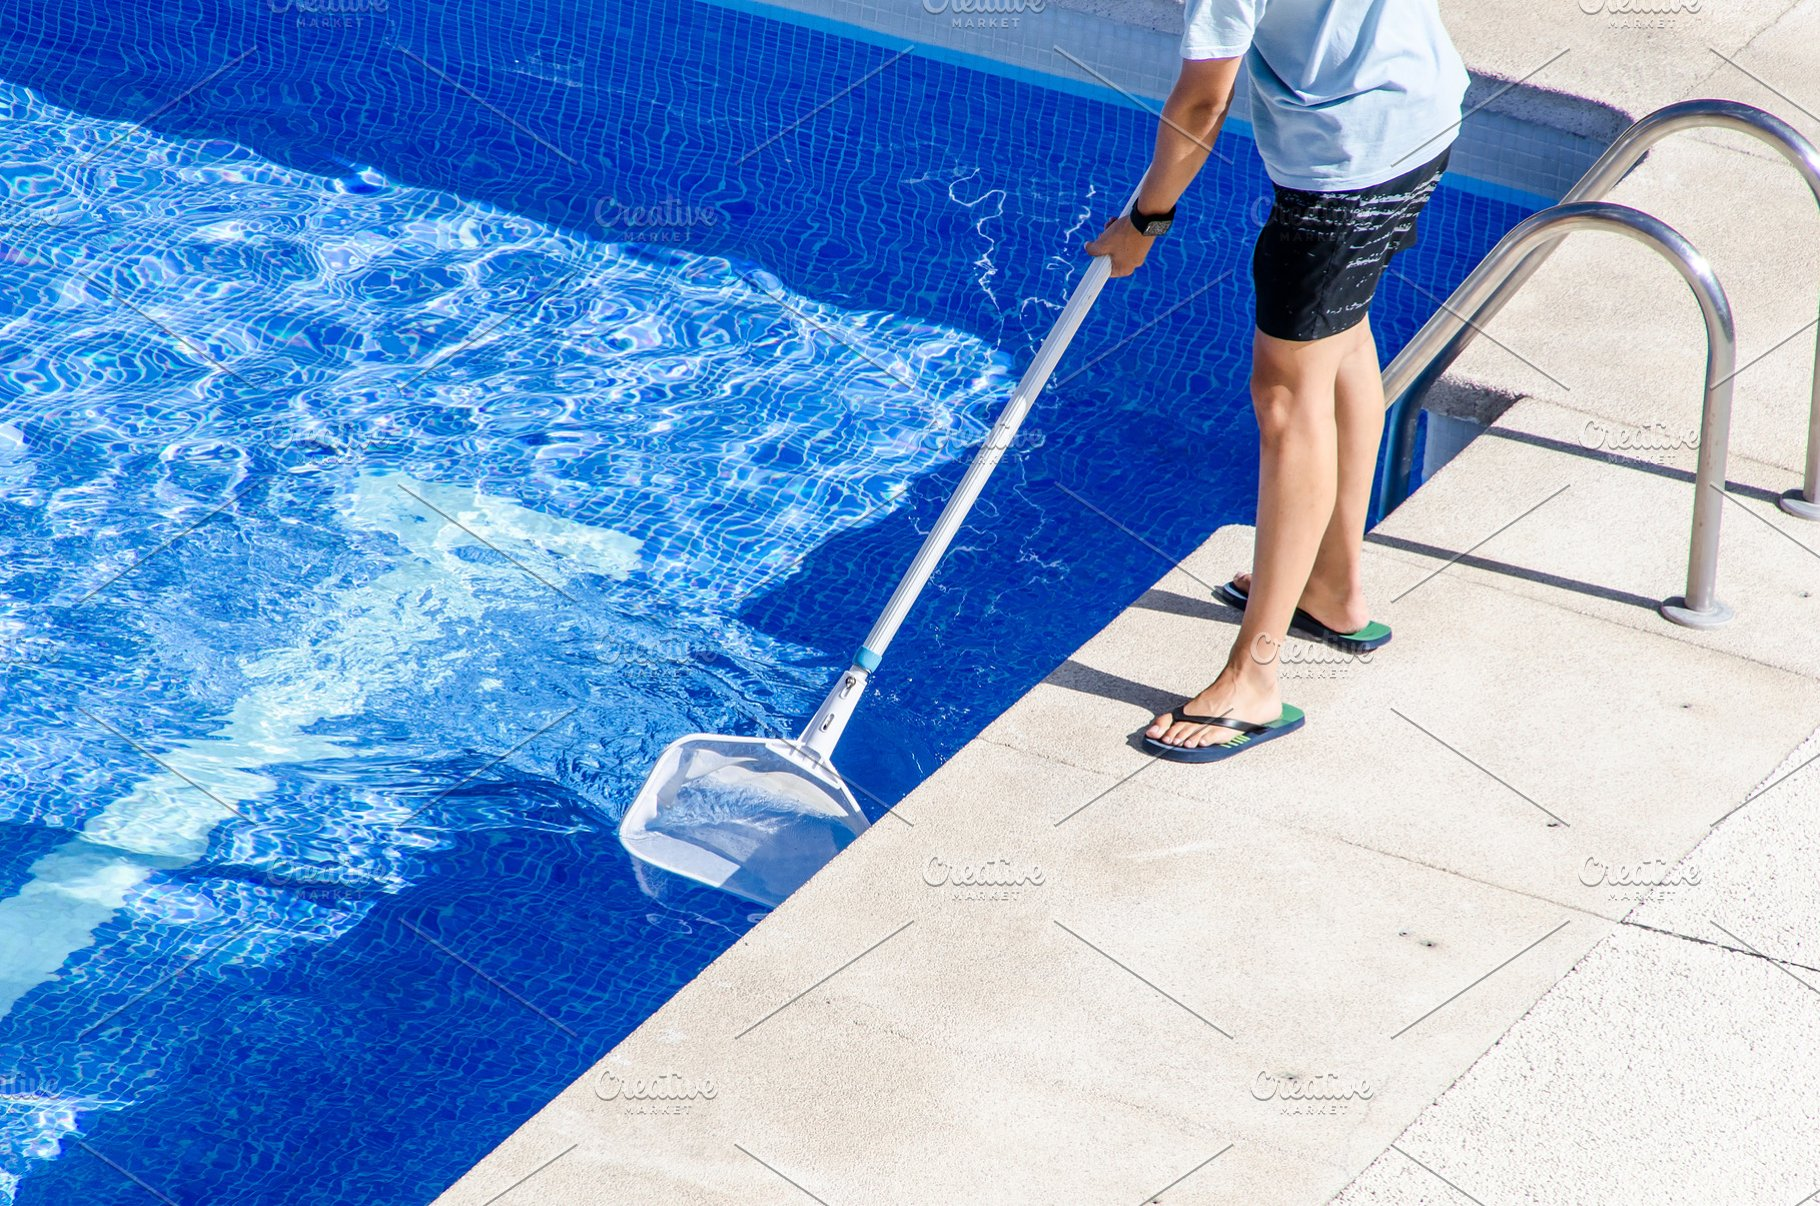 cleaning the swimming pool with a ne ~ People Photos ~ Creative Market